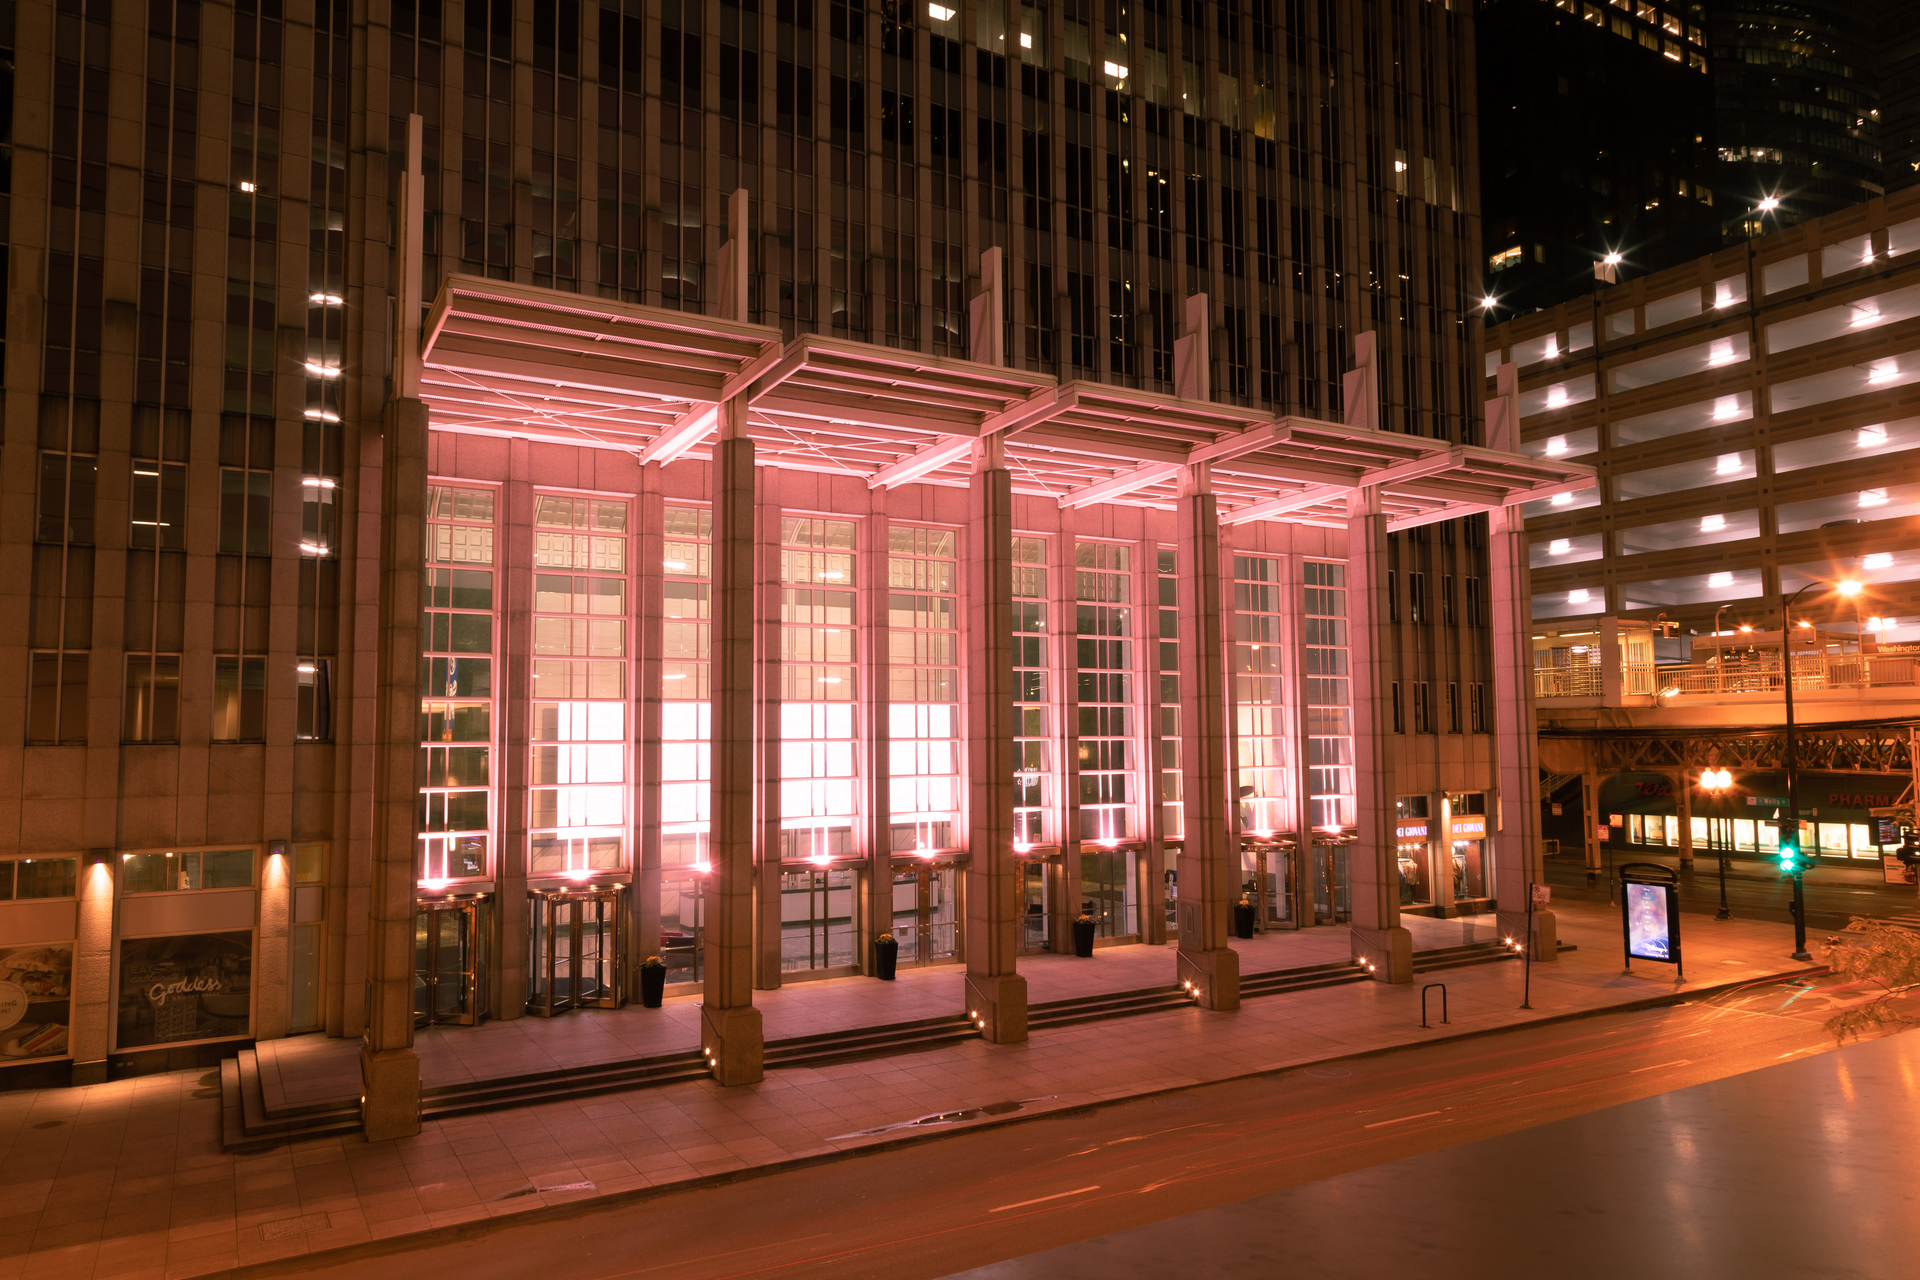 Meteor Lighting's Bolt fixture used in an indirect lighting application to illuminate the large window panes at the 181 W. Madison building